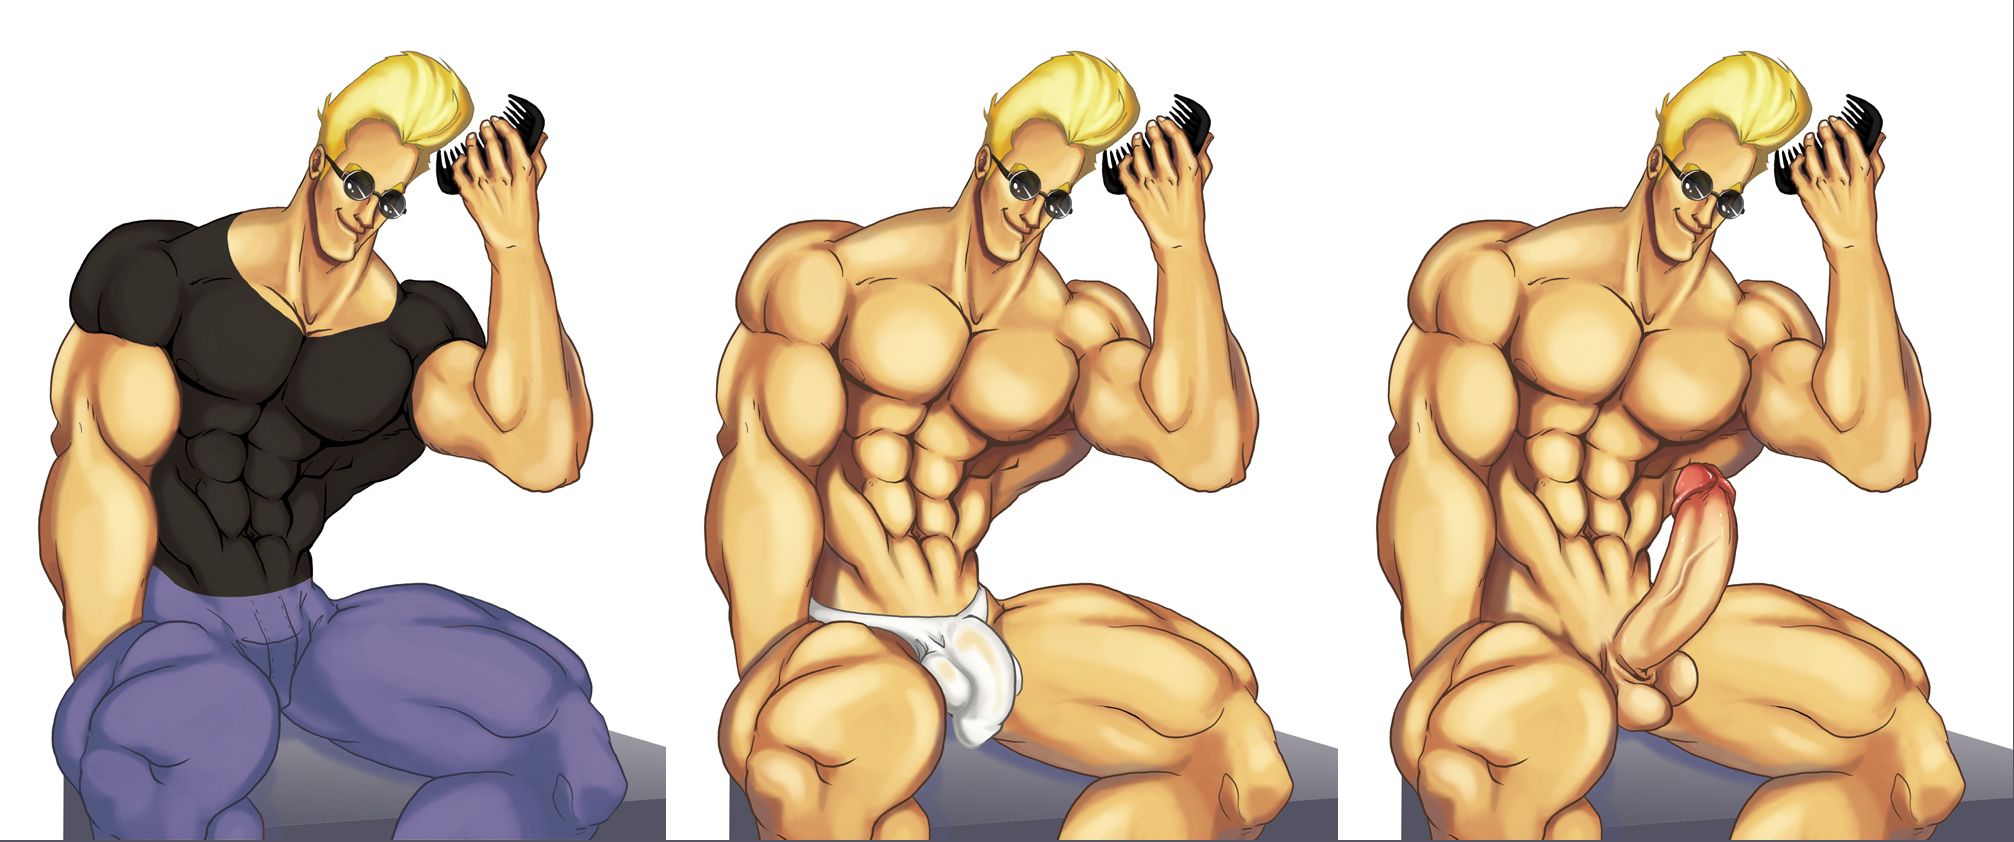 Nude johnny bravo #3